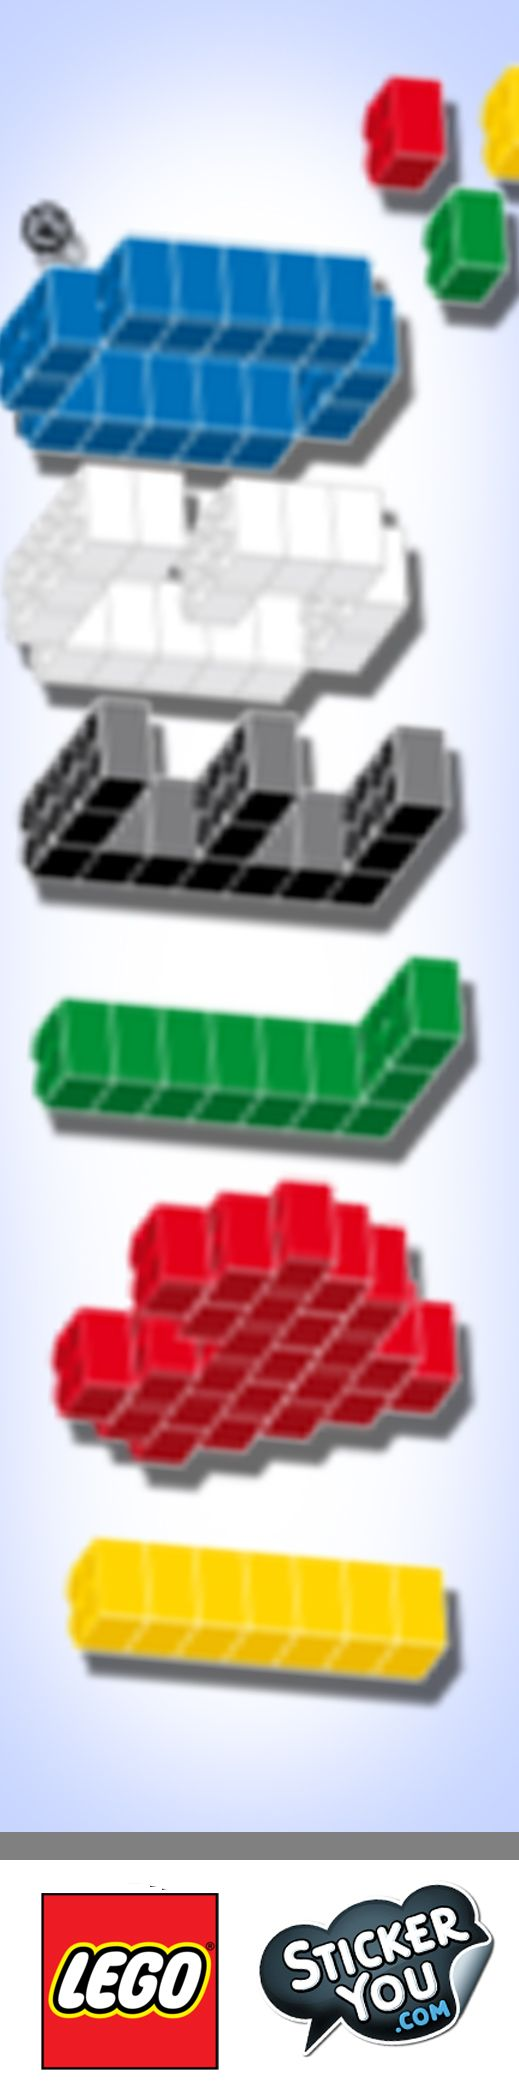 Bumper stickers design your own - Customize Your Own Lego Stickers With Stickeryou S